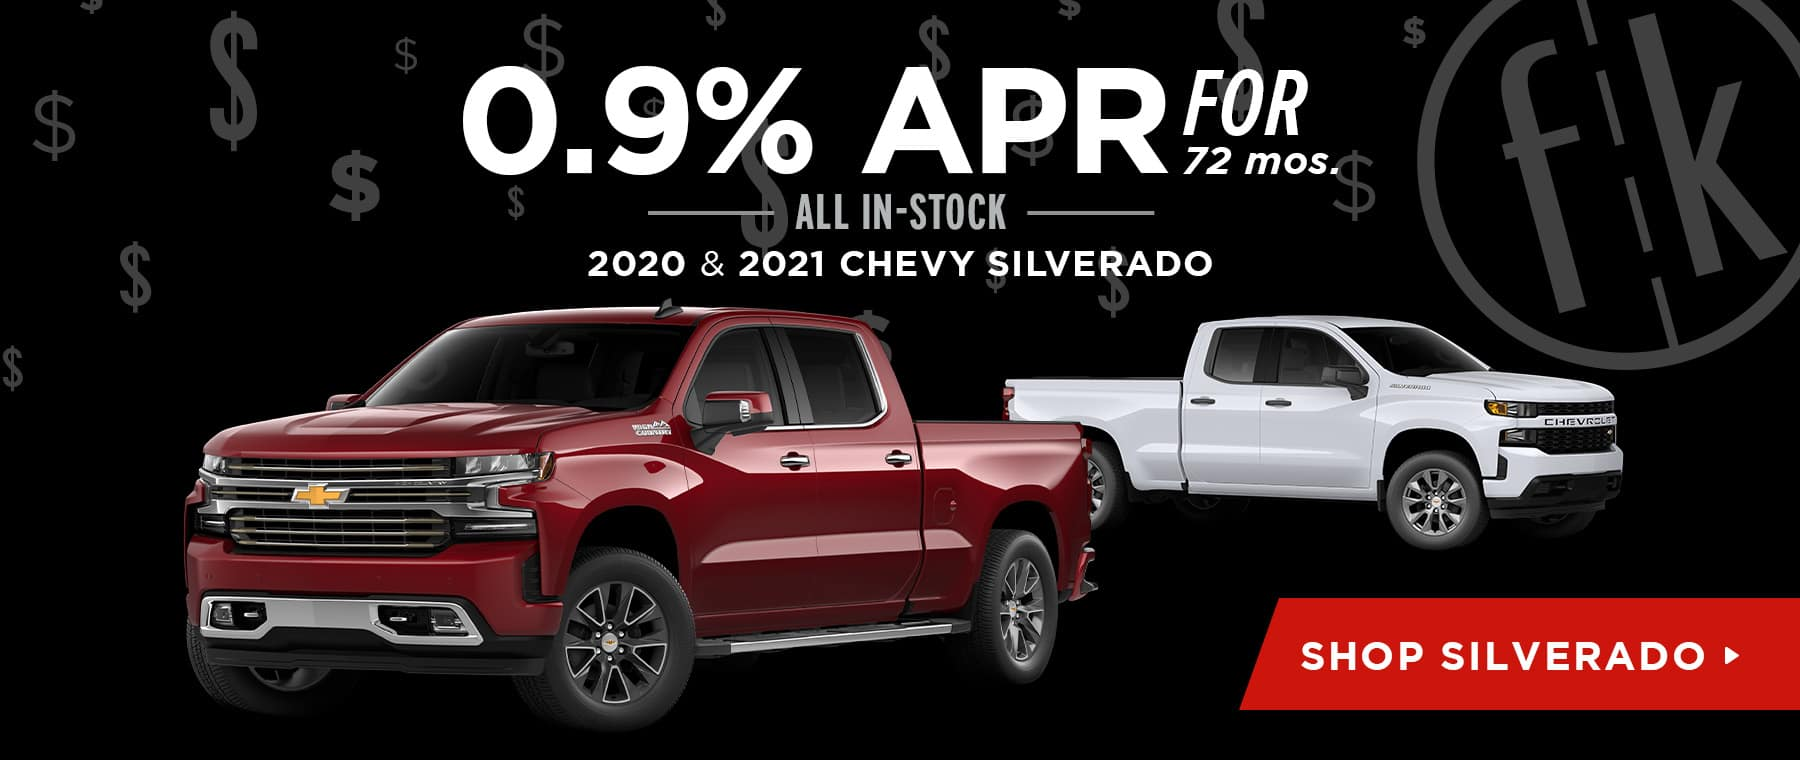 0.9% for 72 mos. All In-Stock 2020 & 2021 Chevy Silverado